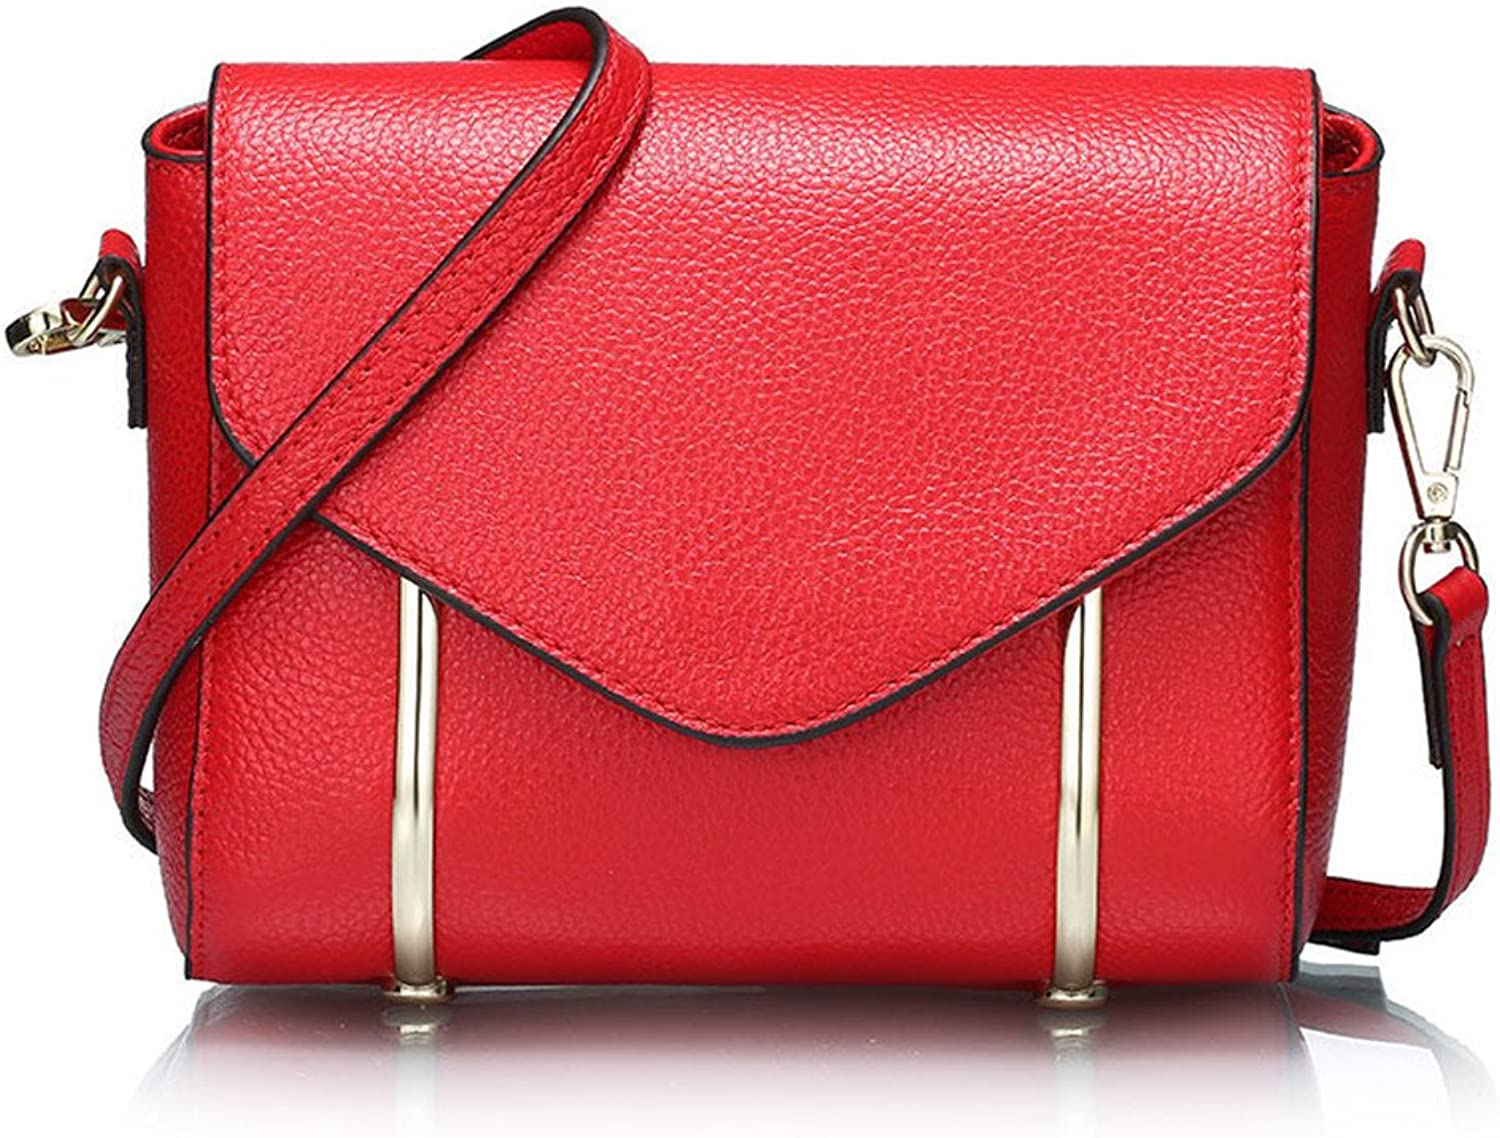 Meaeo The New Summer Summer Summer Bag Leather Handbag Embossed Satchel,Gules B07CPXKFQ5  Obermaterial 194c41